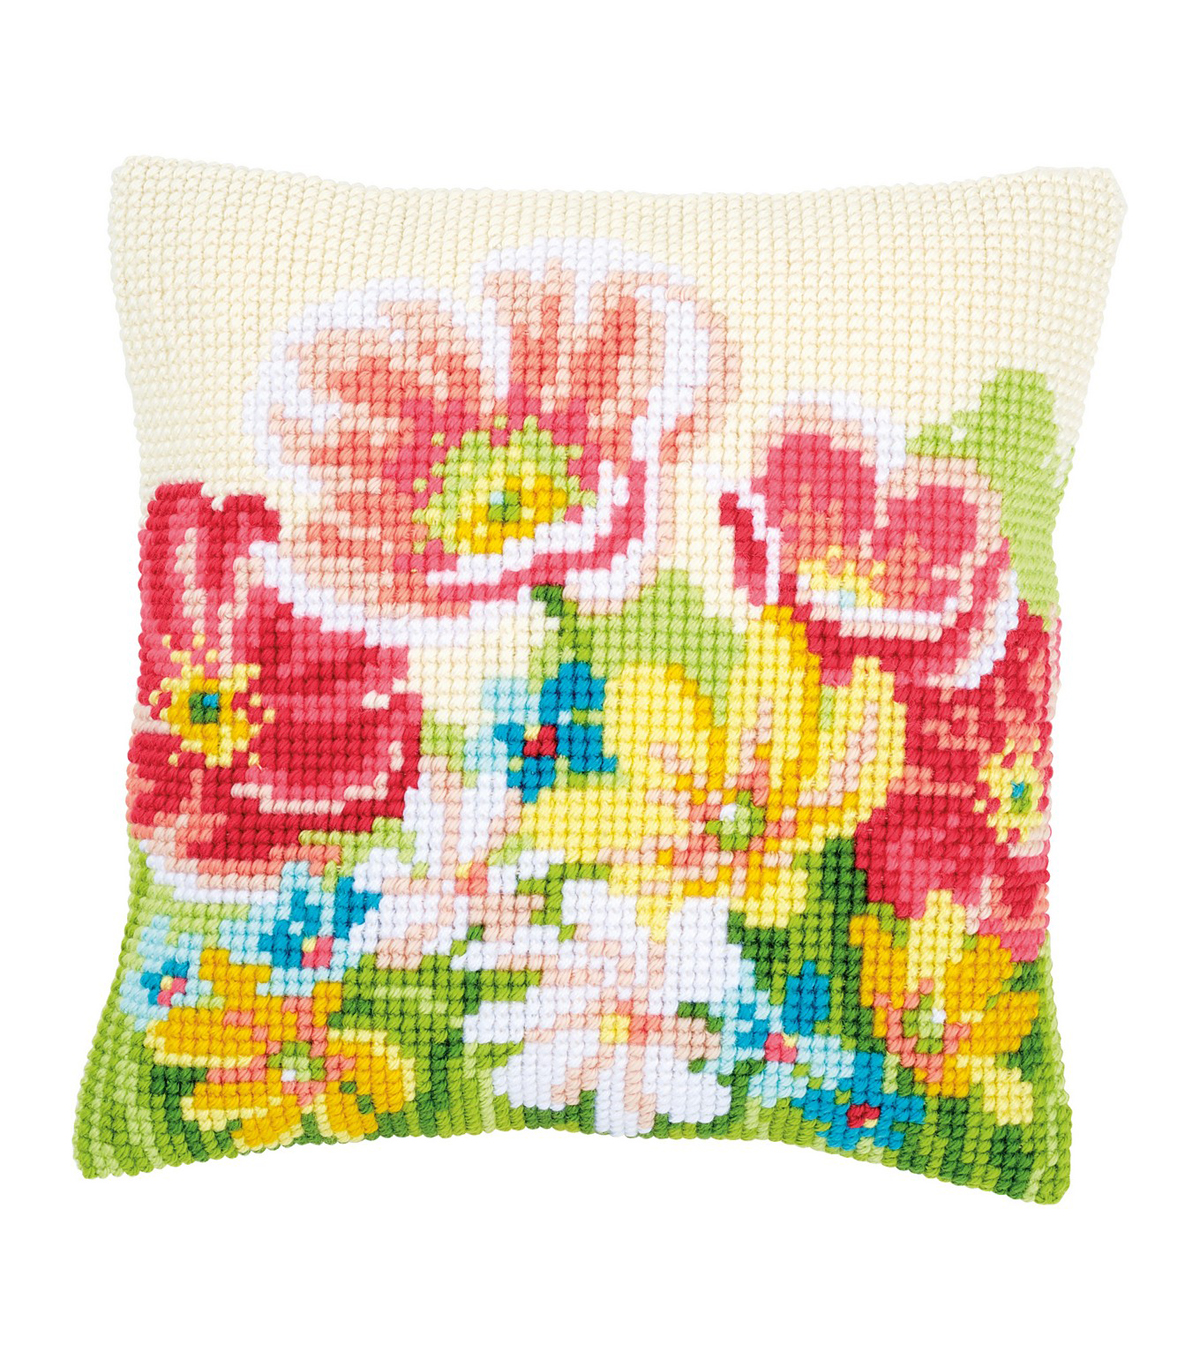 Vervaco Needlepoint Cushion Top Kit 16\u0027\u0027X16\u0027\u0027-Summer Flowers Stitched